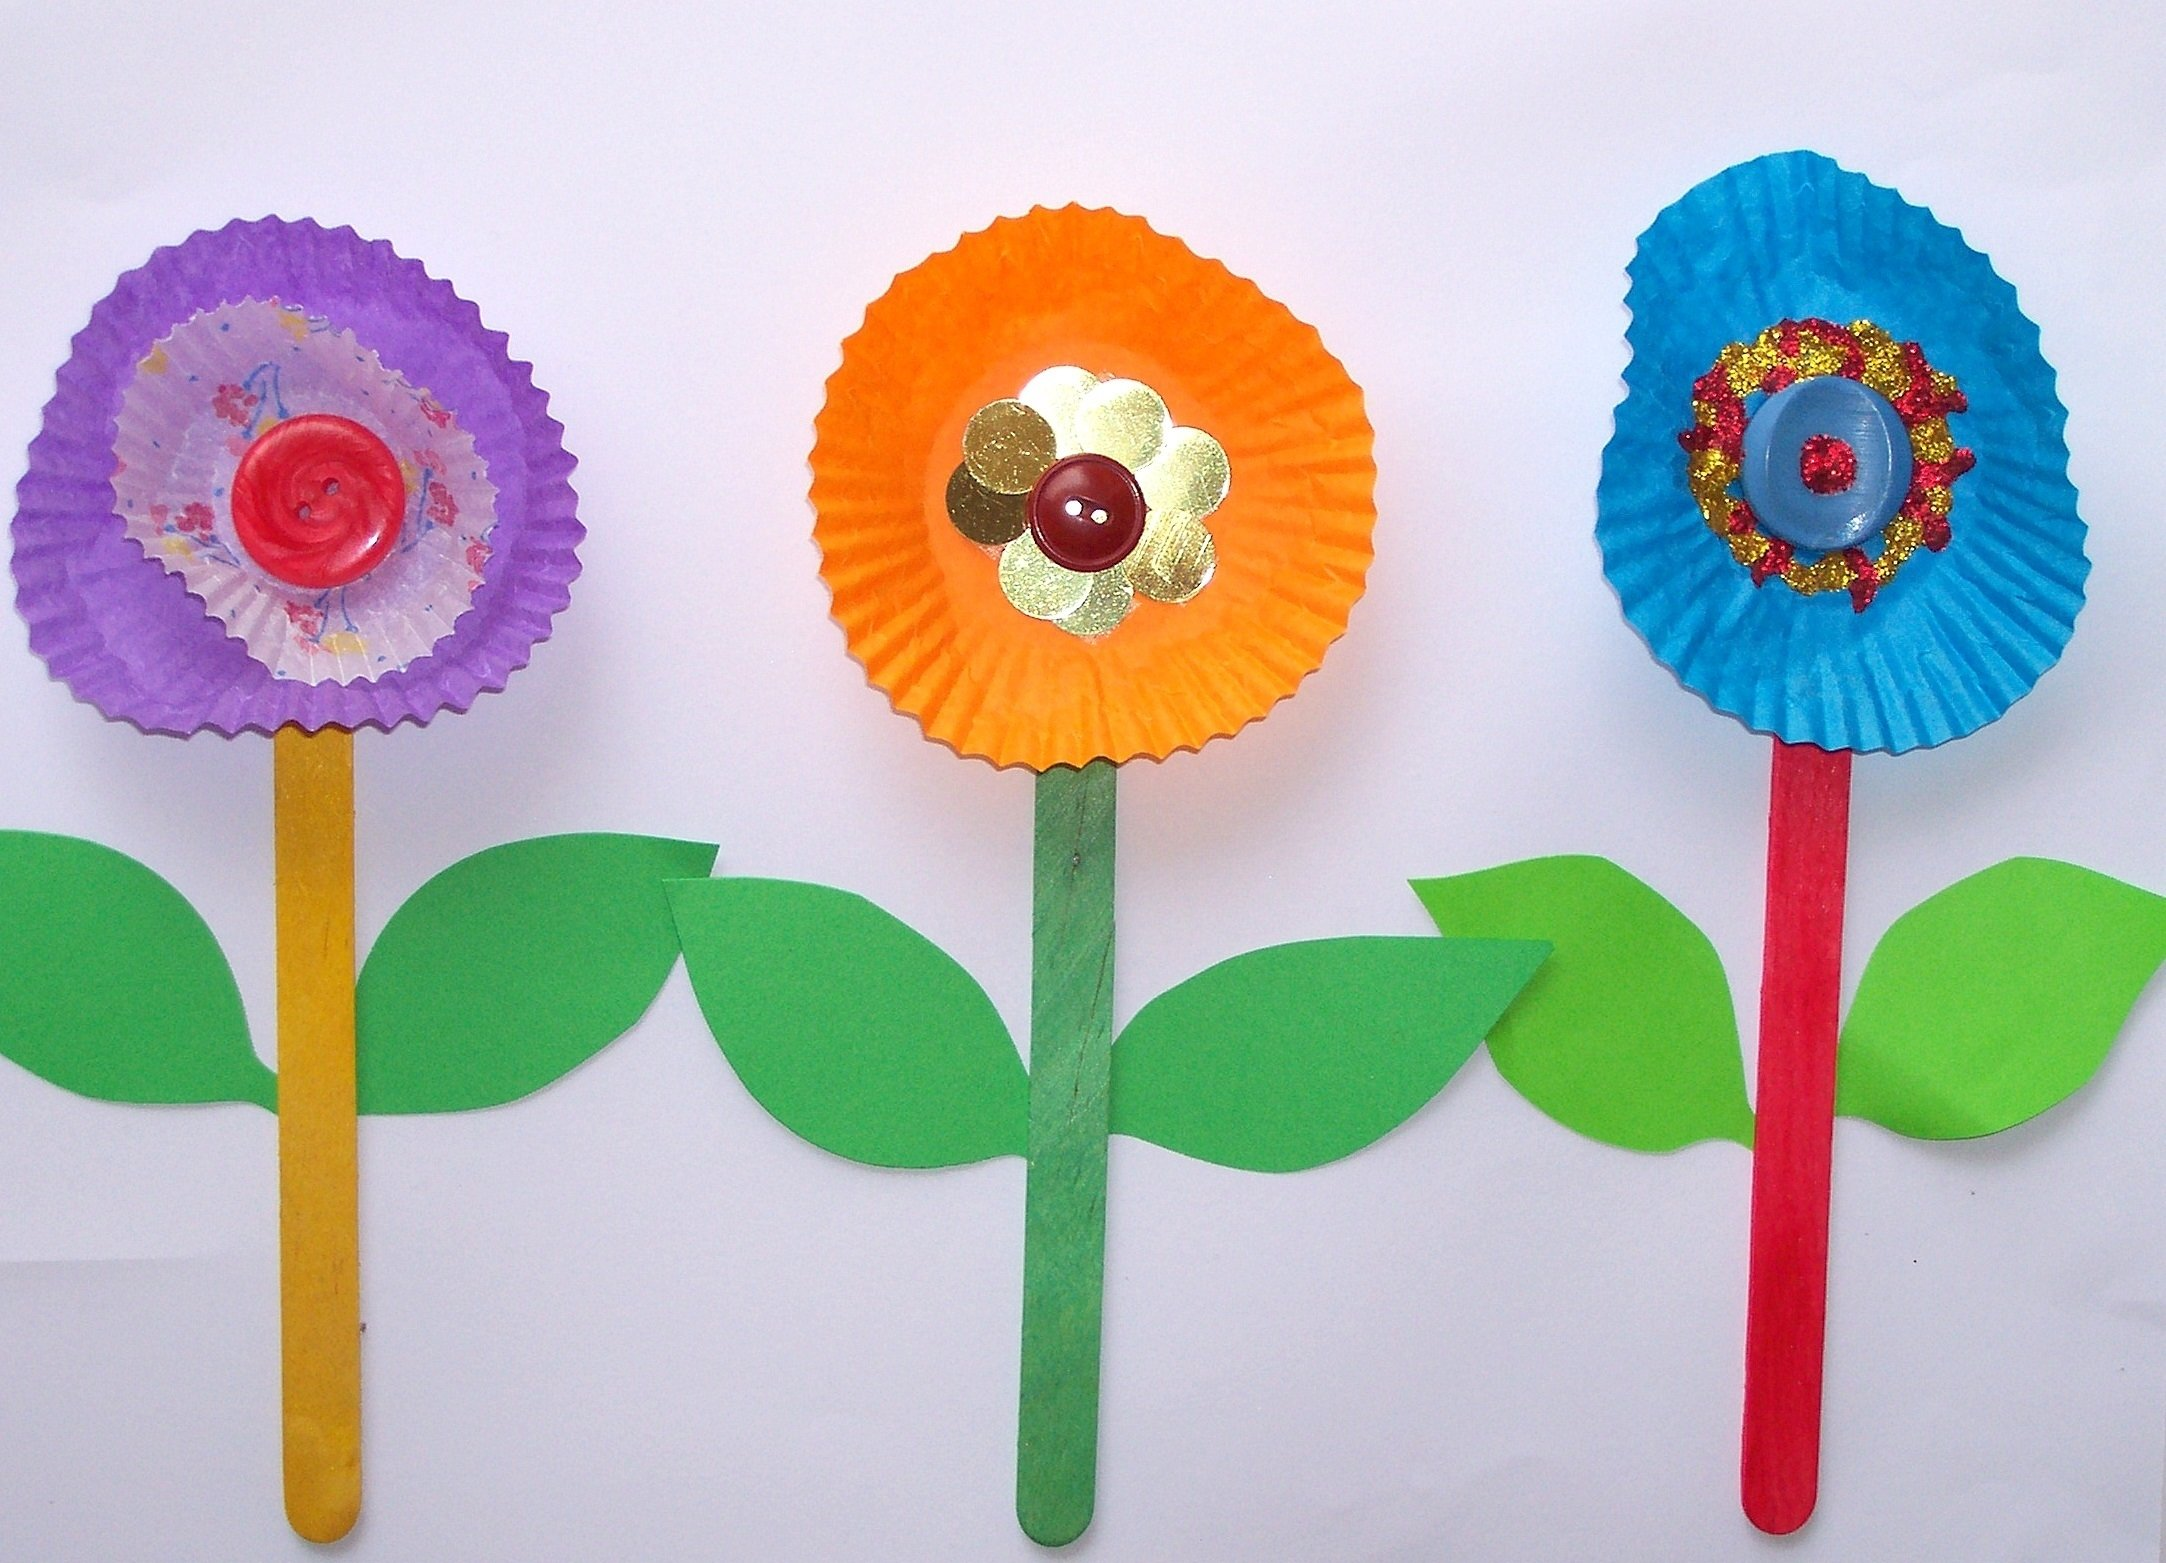 10 Most Recommended Spring Craft Ideas For Preschoolers easy spring kids crafts homi craft home art decor 21785 2021